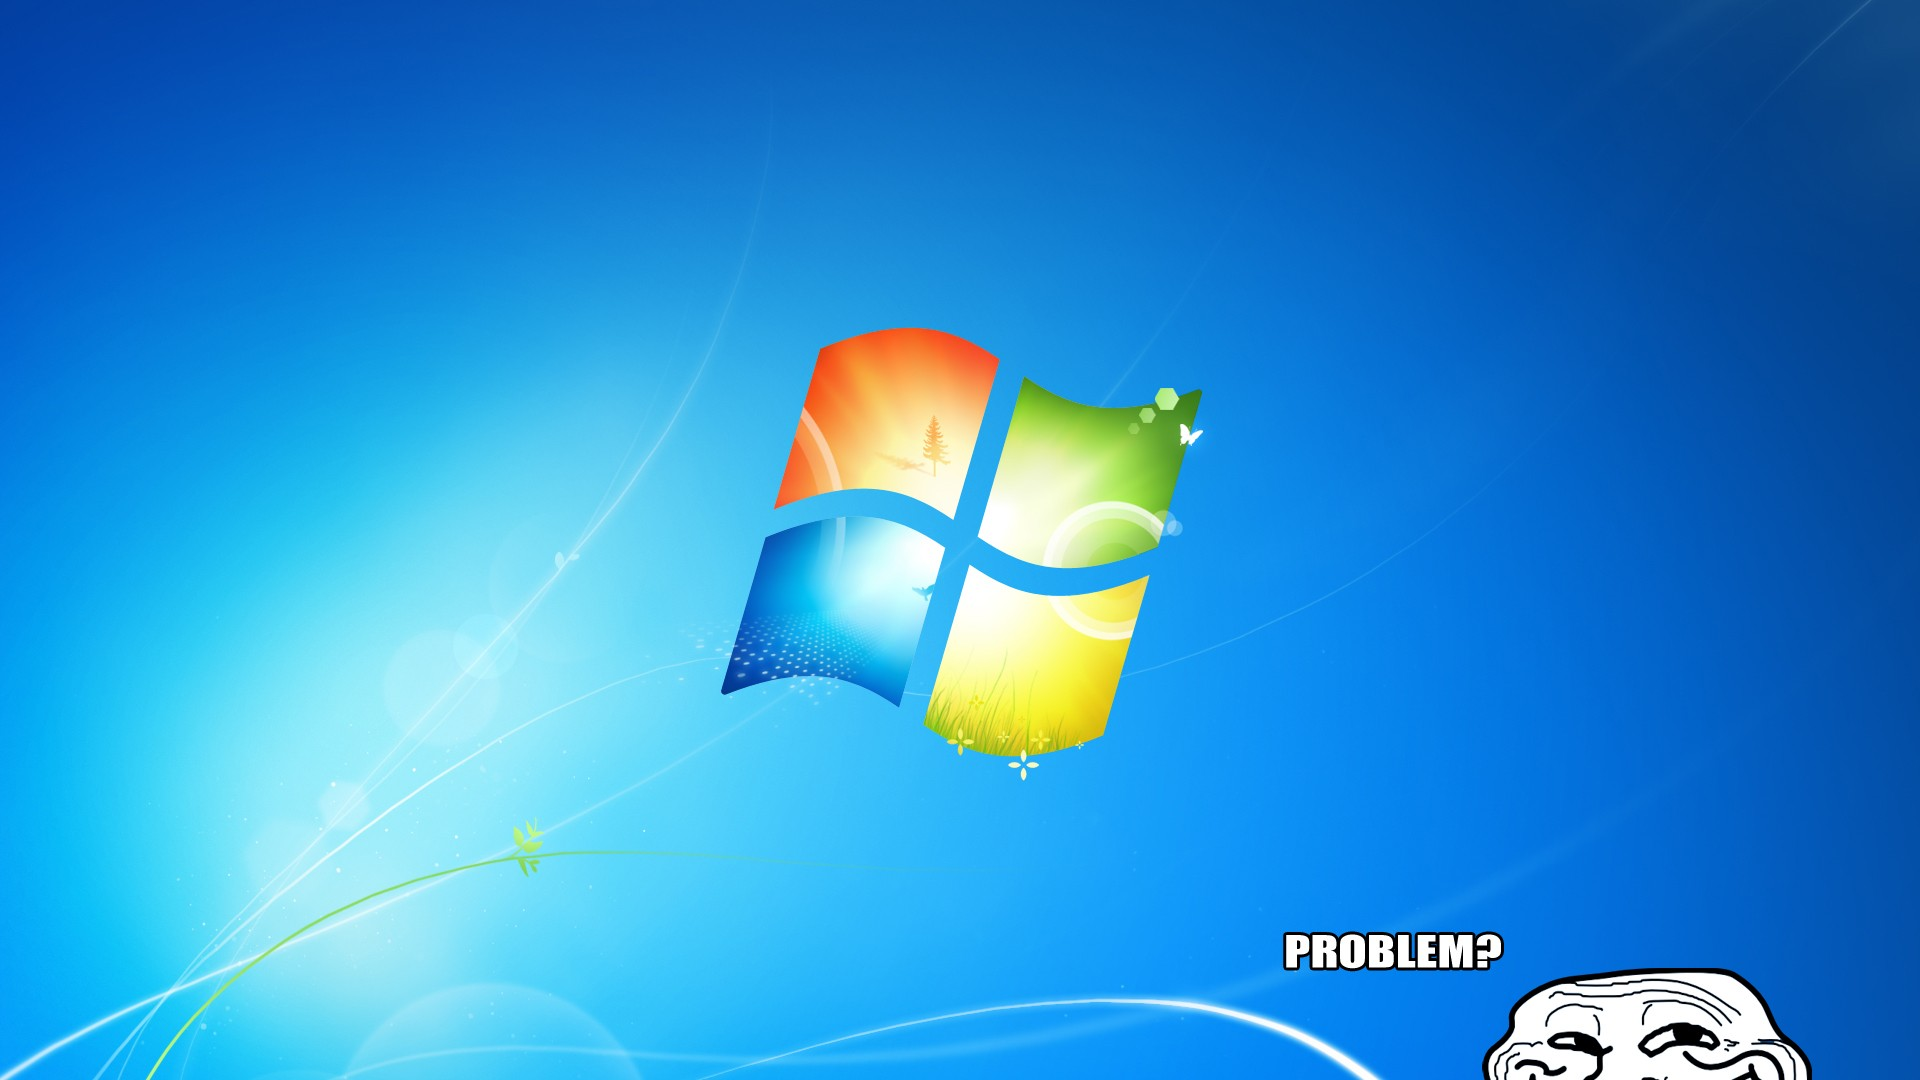 Windows 7 Wallpaper 1920x1080 Windows 7 Humor Funny Trolling 1920x1080